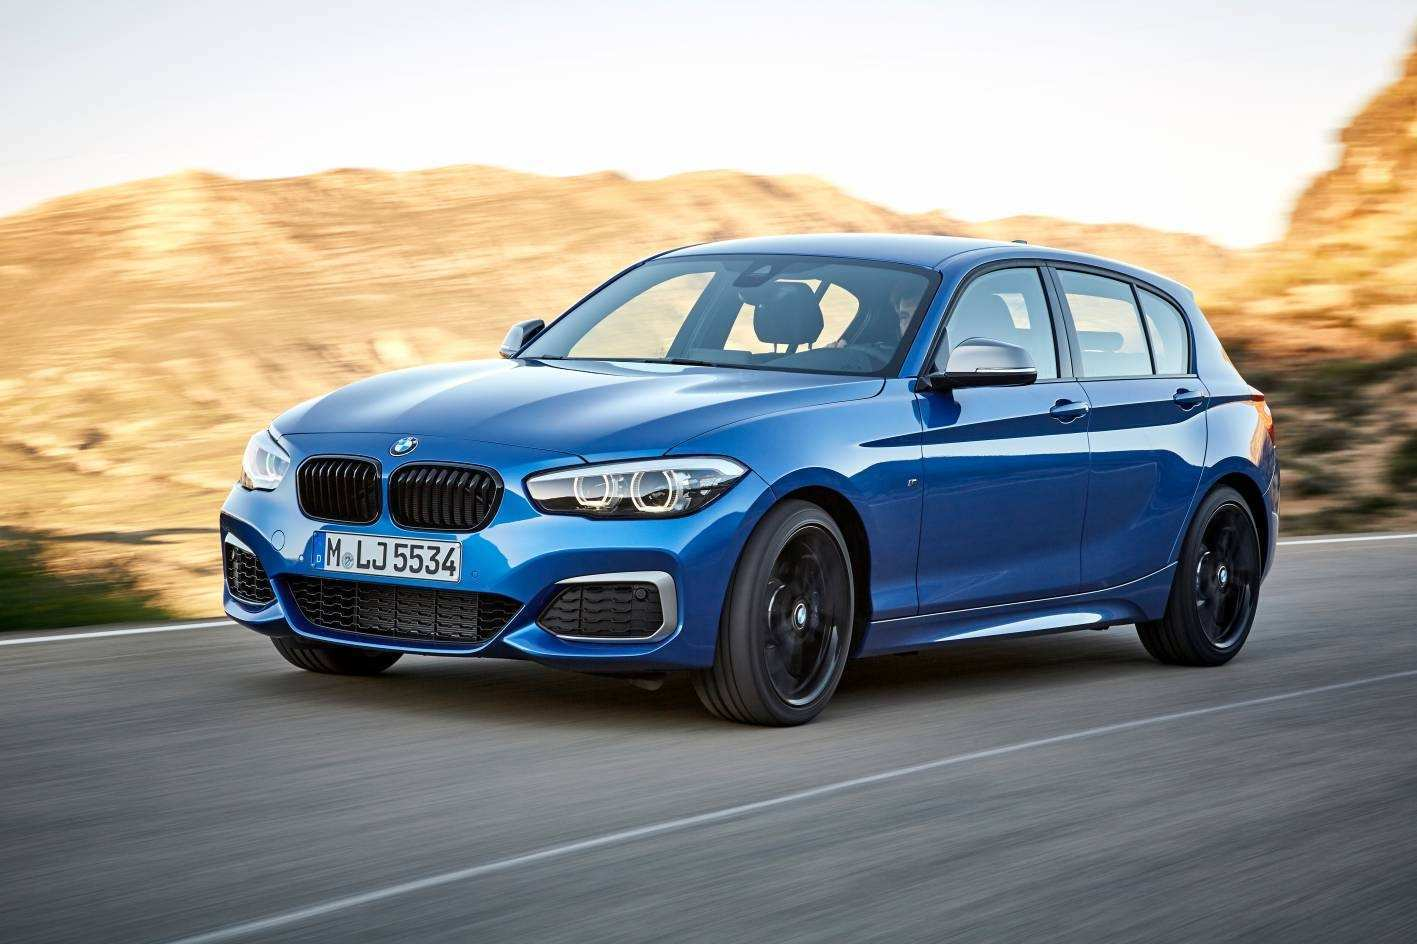 74 Great The The New Bmw 1 Series 2019 Price Exterior with The The New Bmw 1 Series 2019 Price